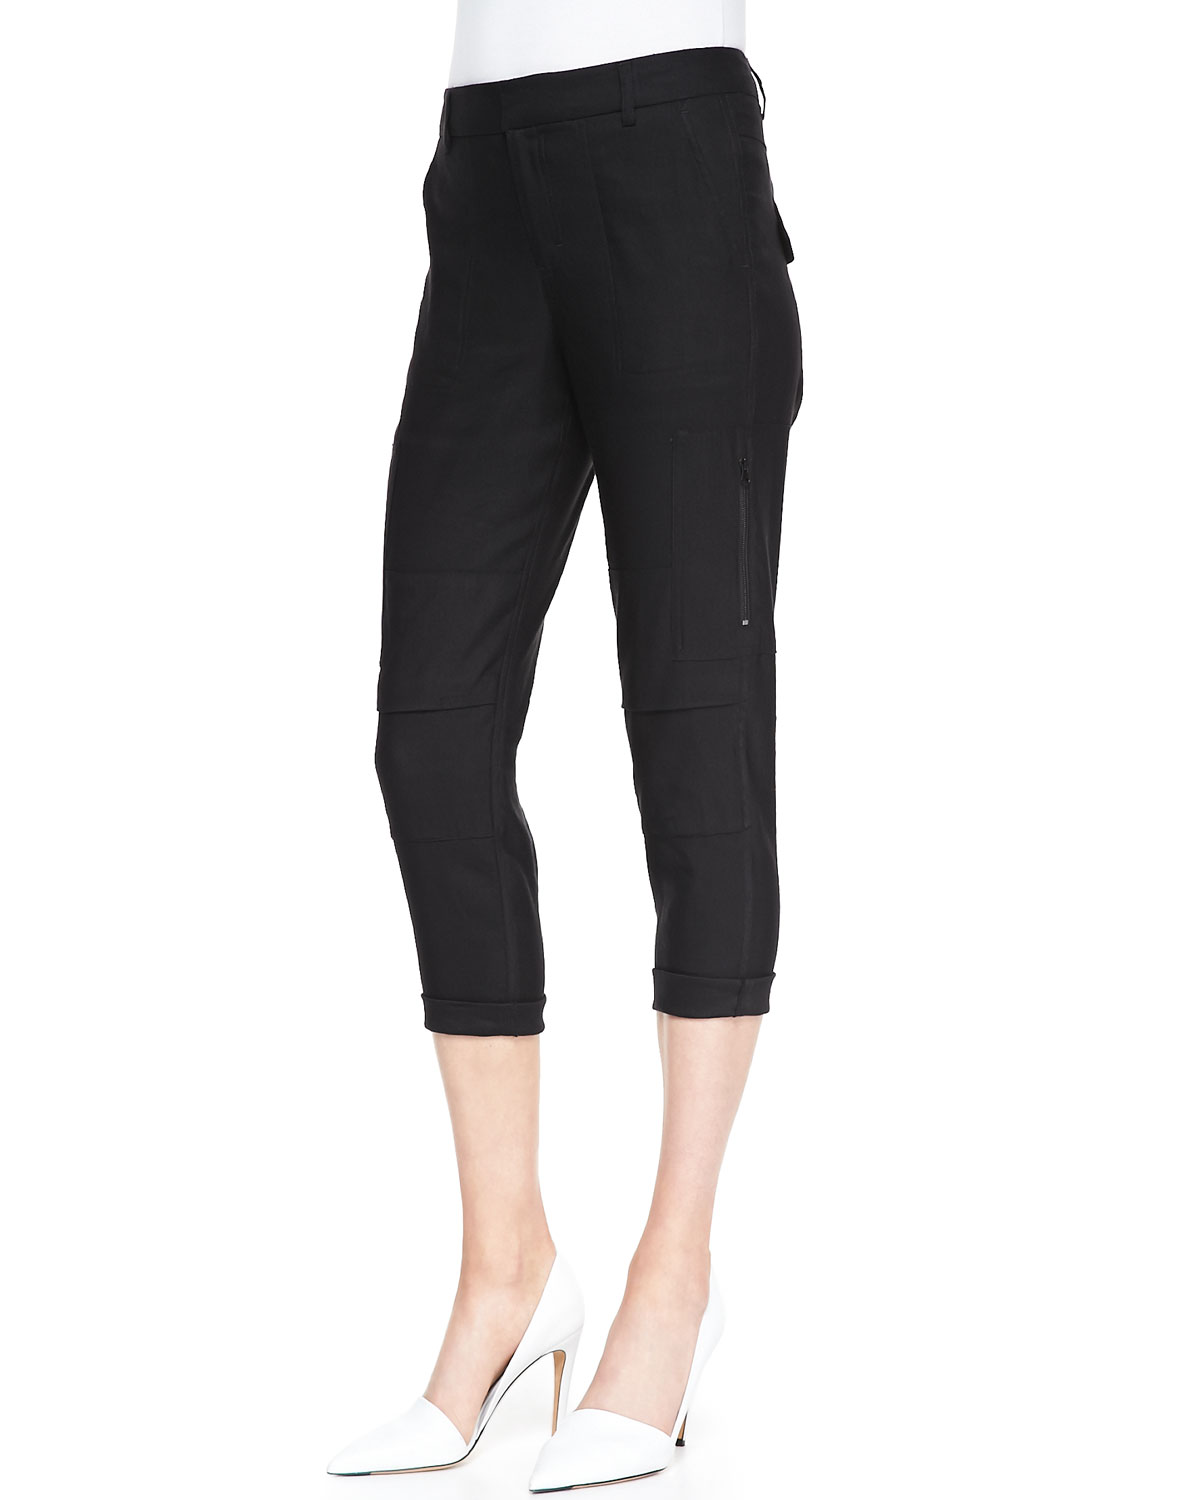 Womens Slim Cropped Cargo Pants   Vince